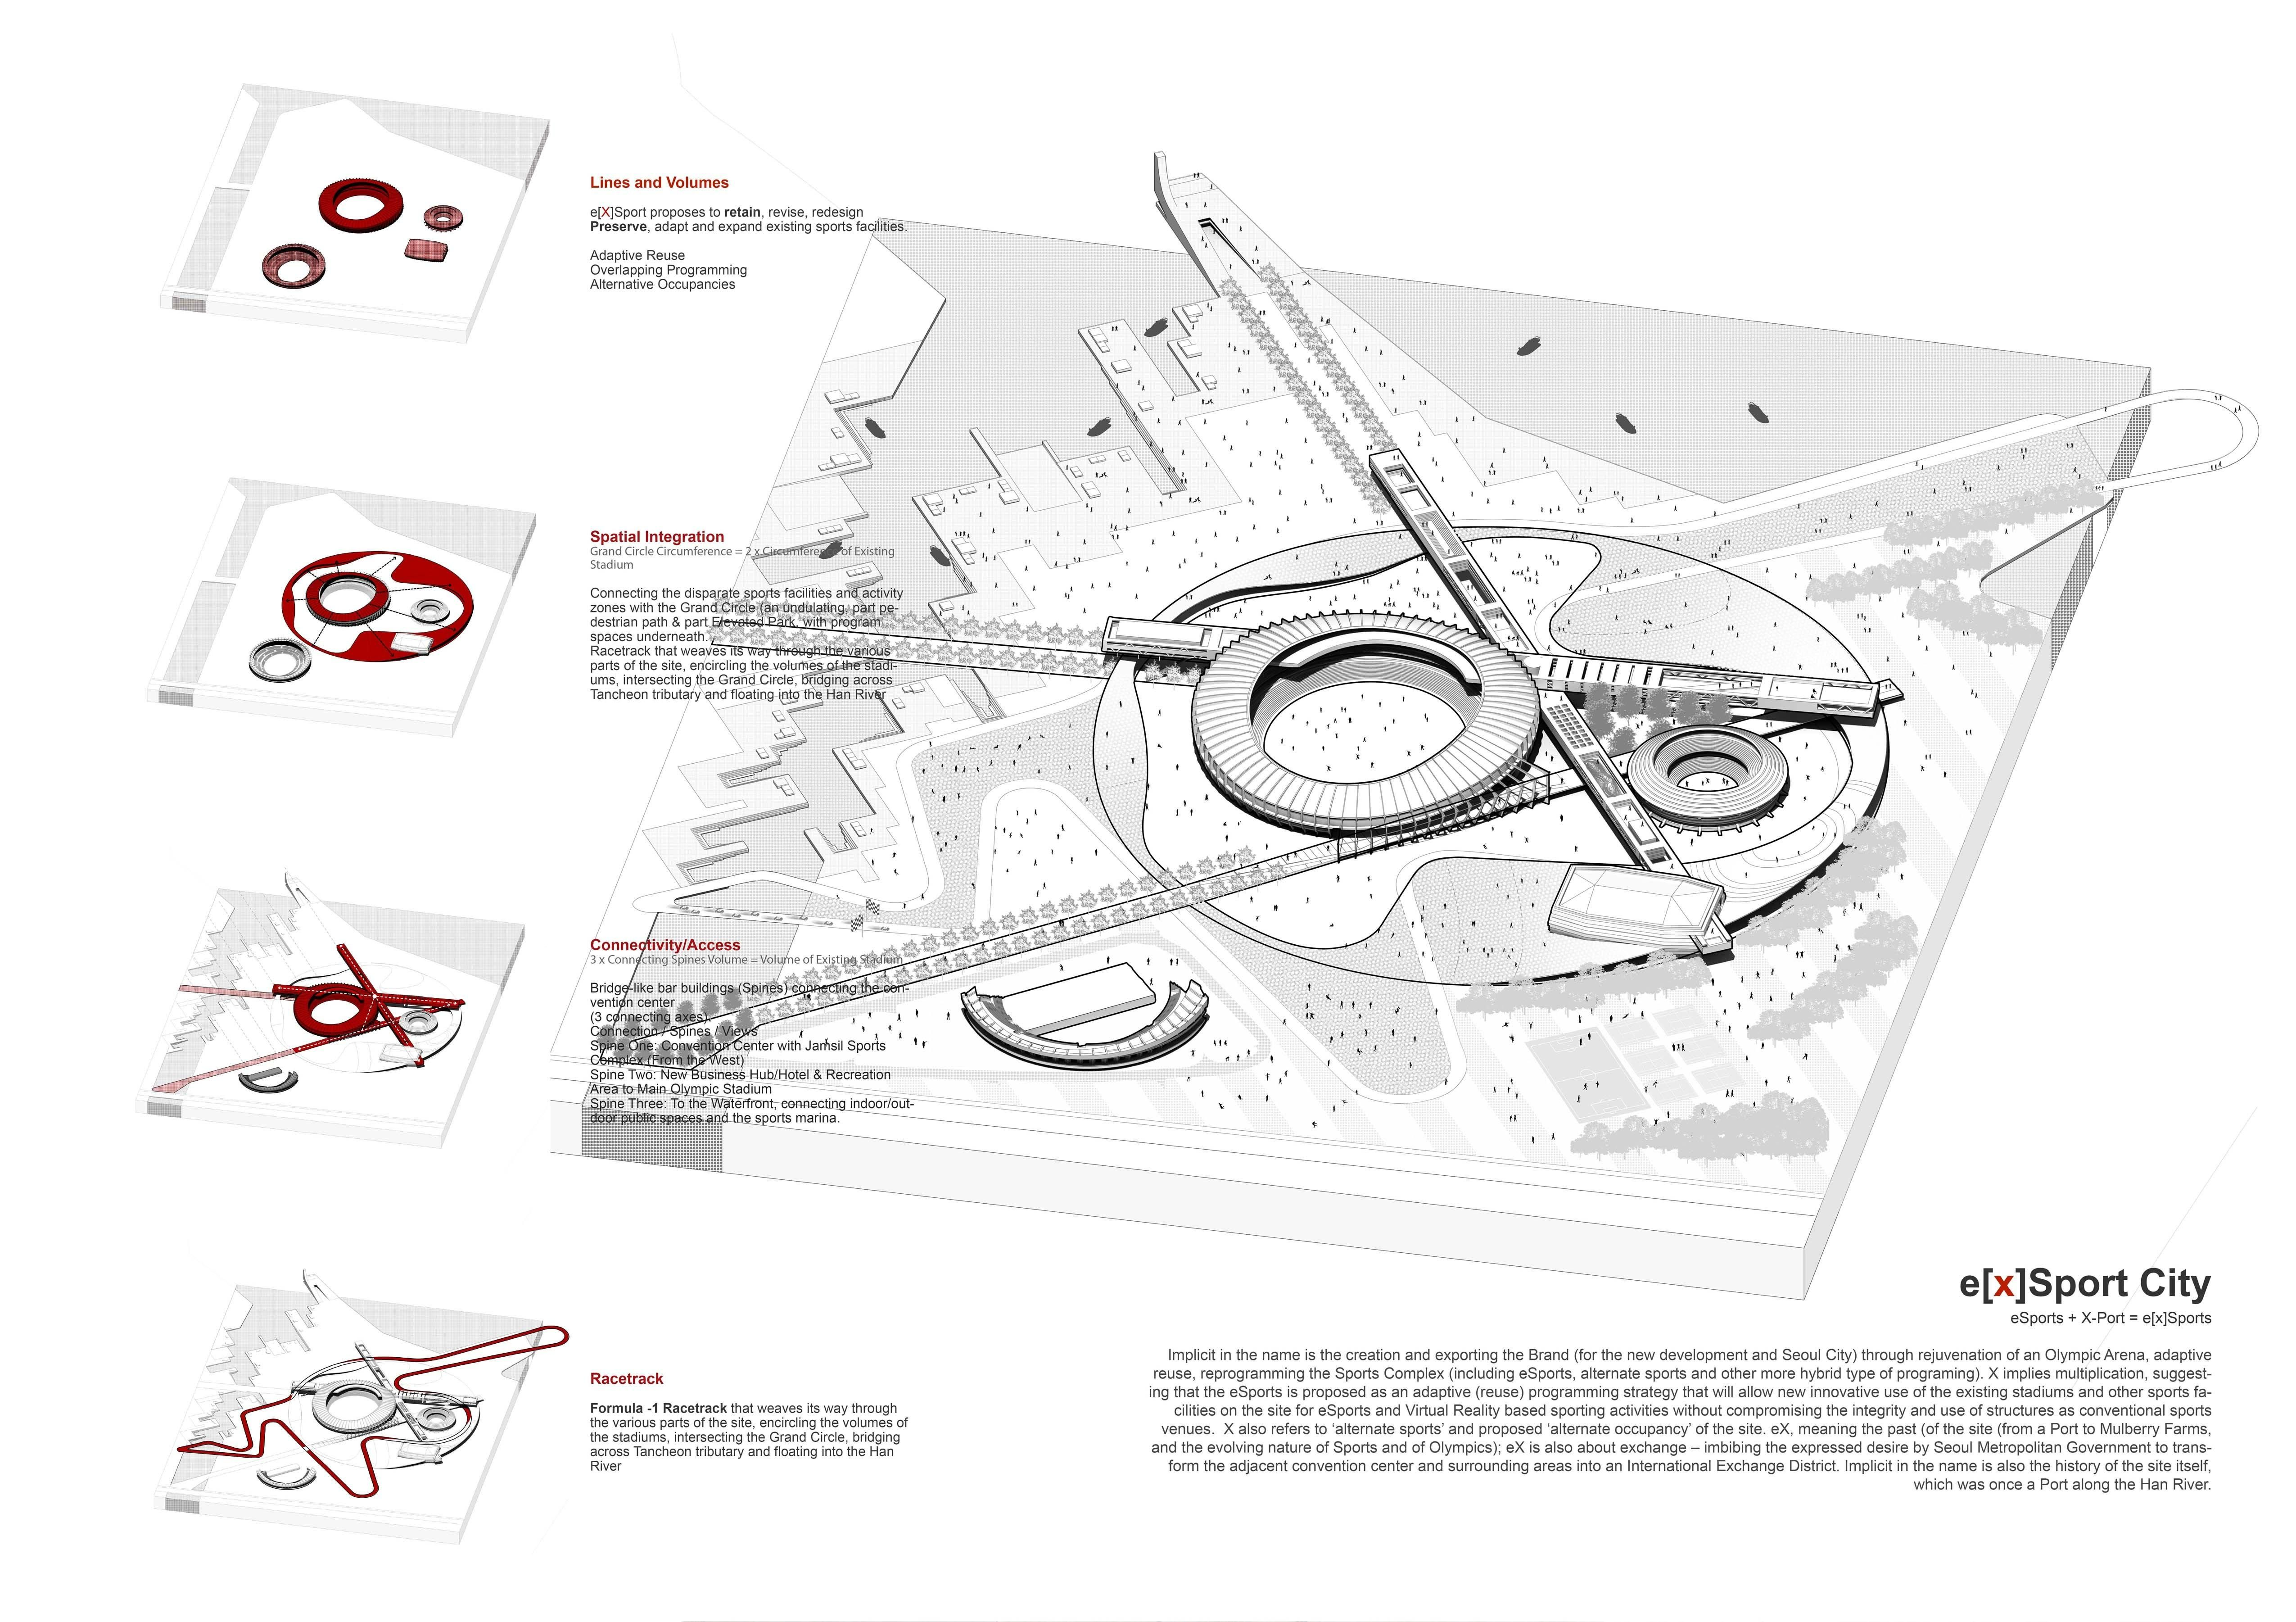 Pin by Tzu-Yi Chuang on GRAPHIC | Sports complex, Business